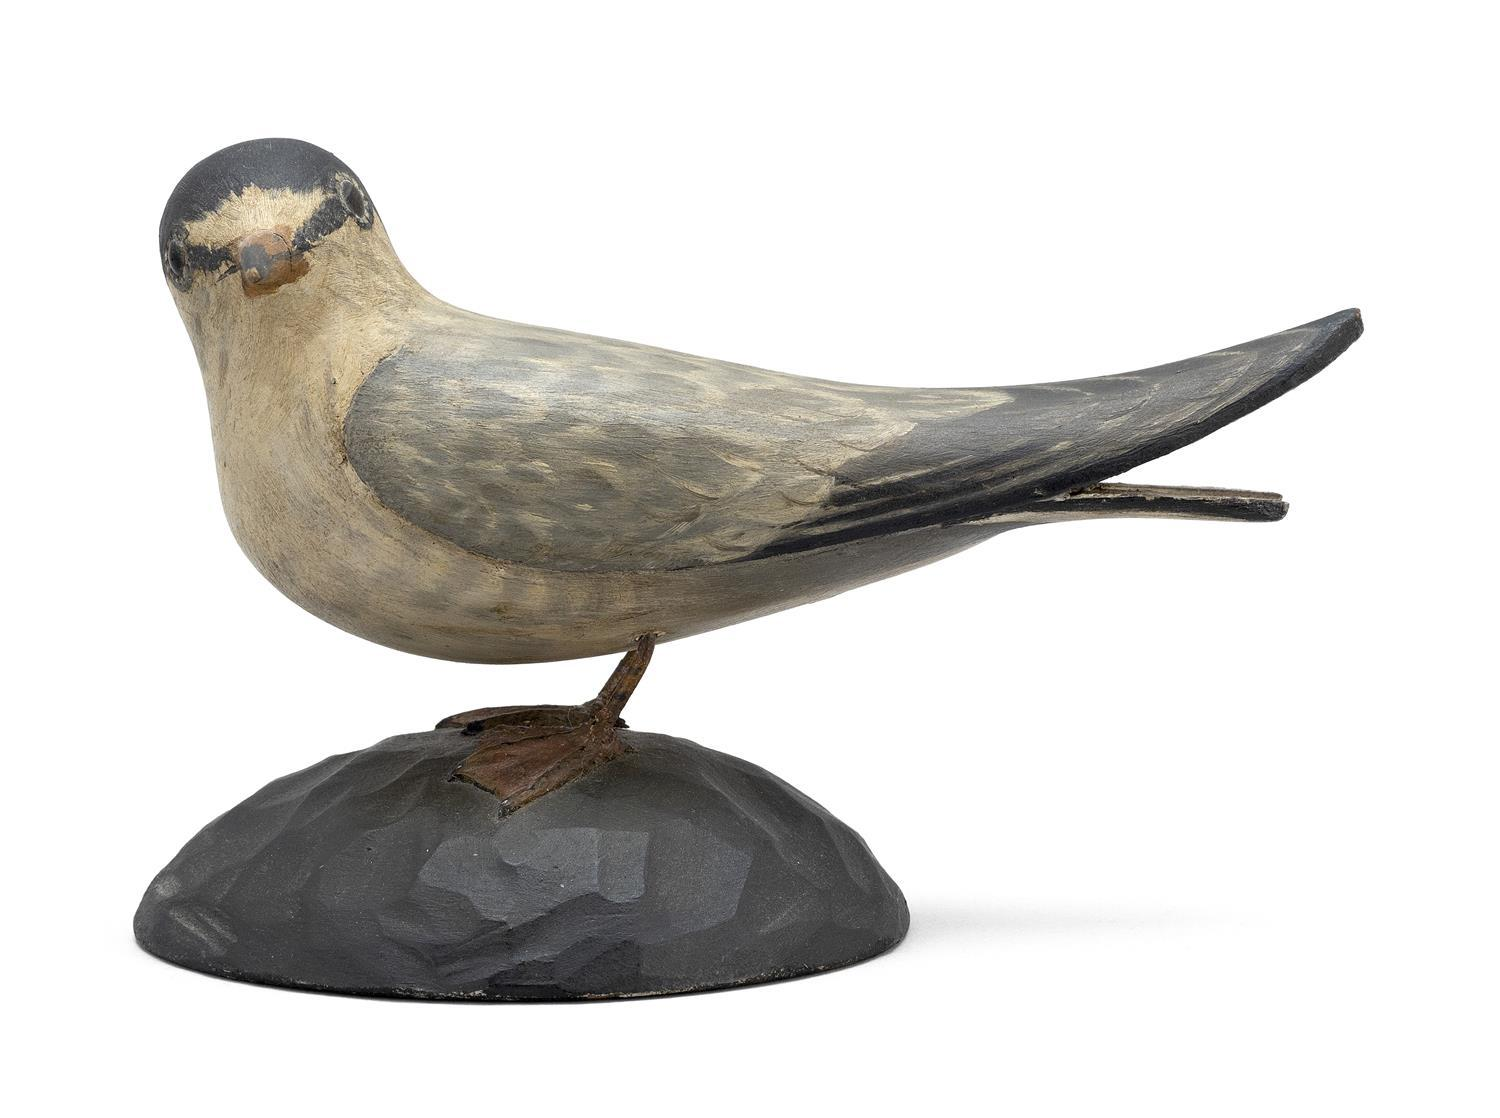 A. ELMER CROWELL LIFE-SIZE LEAST TERN Head turned 90 degress to the left. Mounted to a chipped-carved base. Two rectangular stamps....